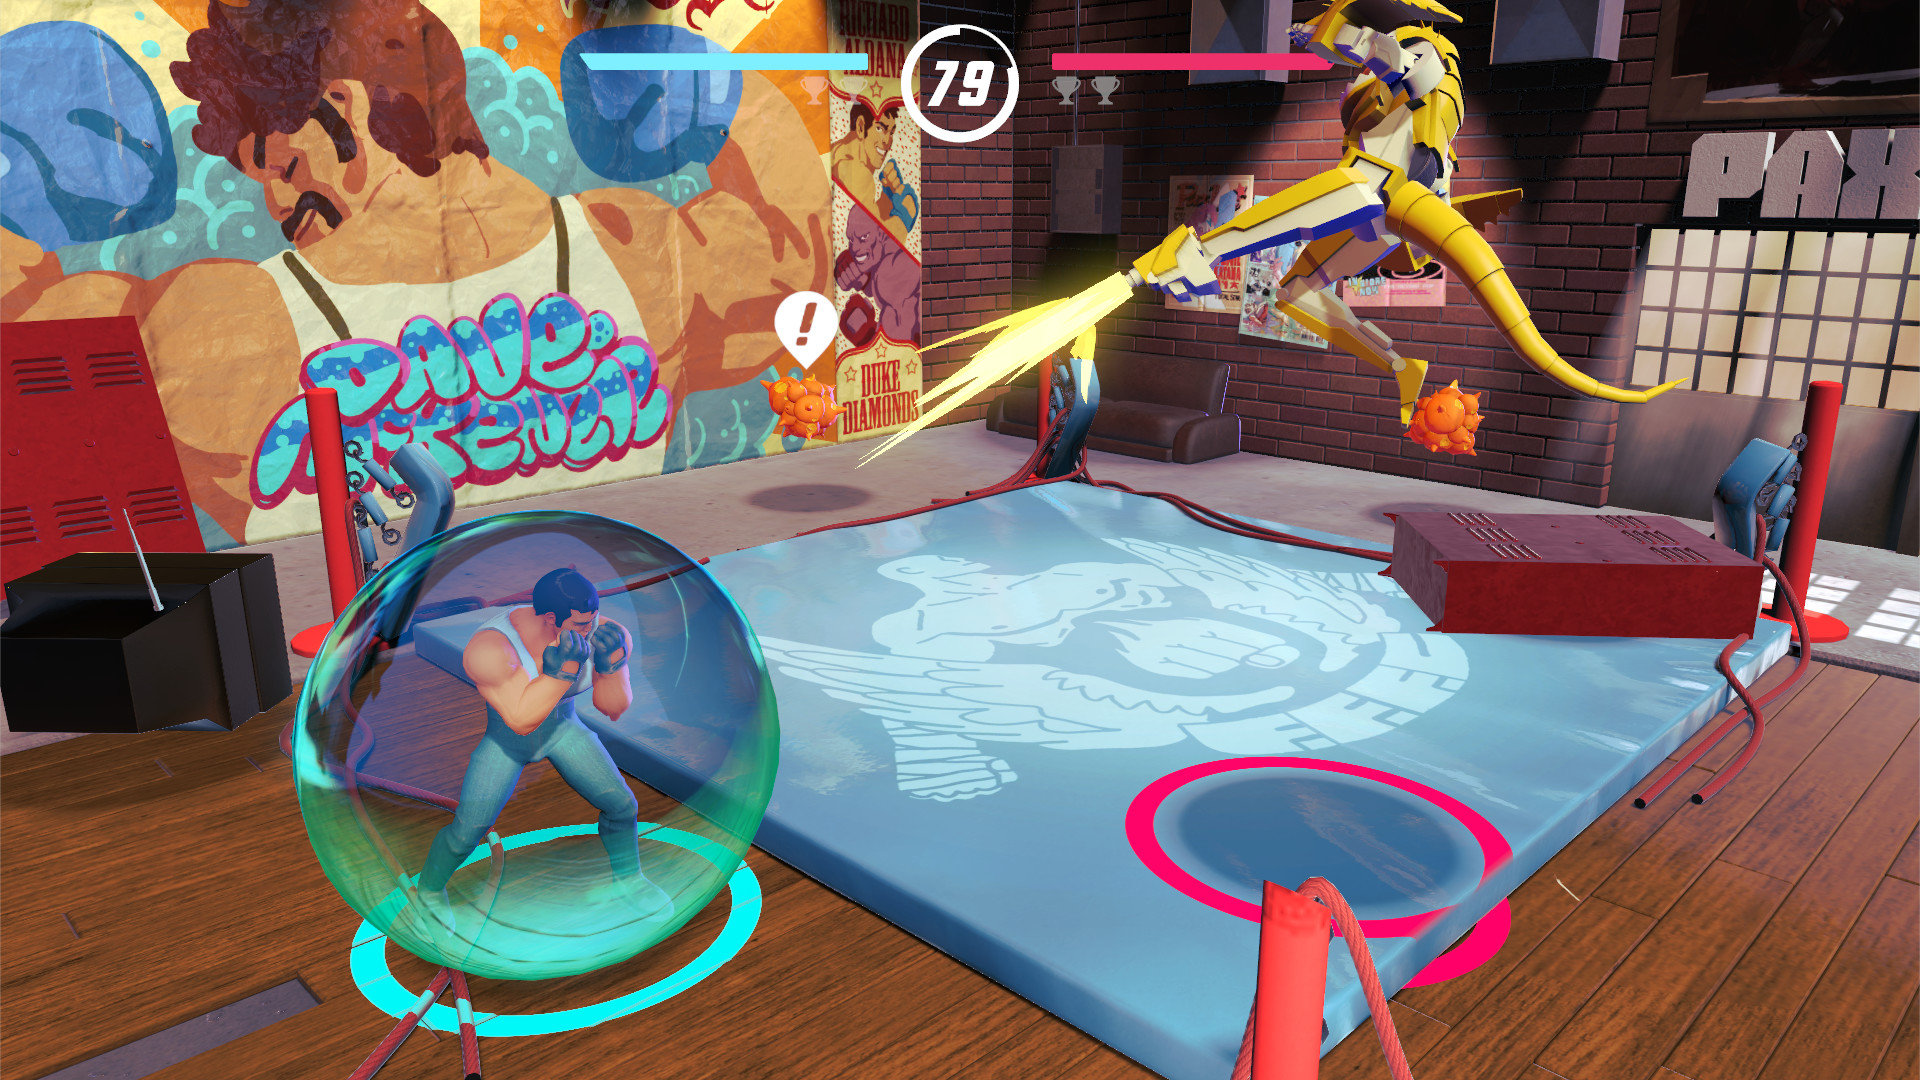 wildstar-gold | Power Stone-Inspired 3D Brawler Lastfight to Release on PC and PS4 On May 19